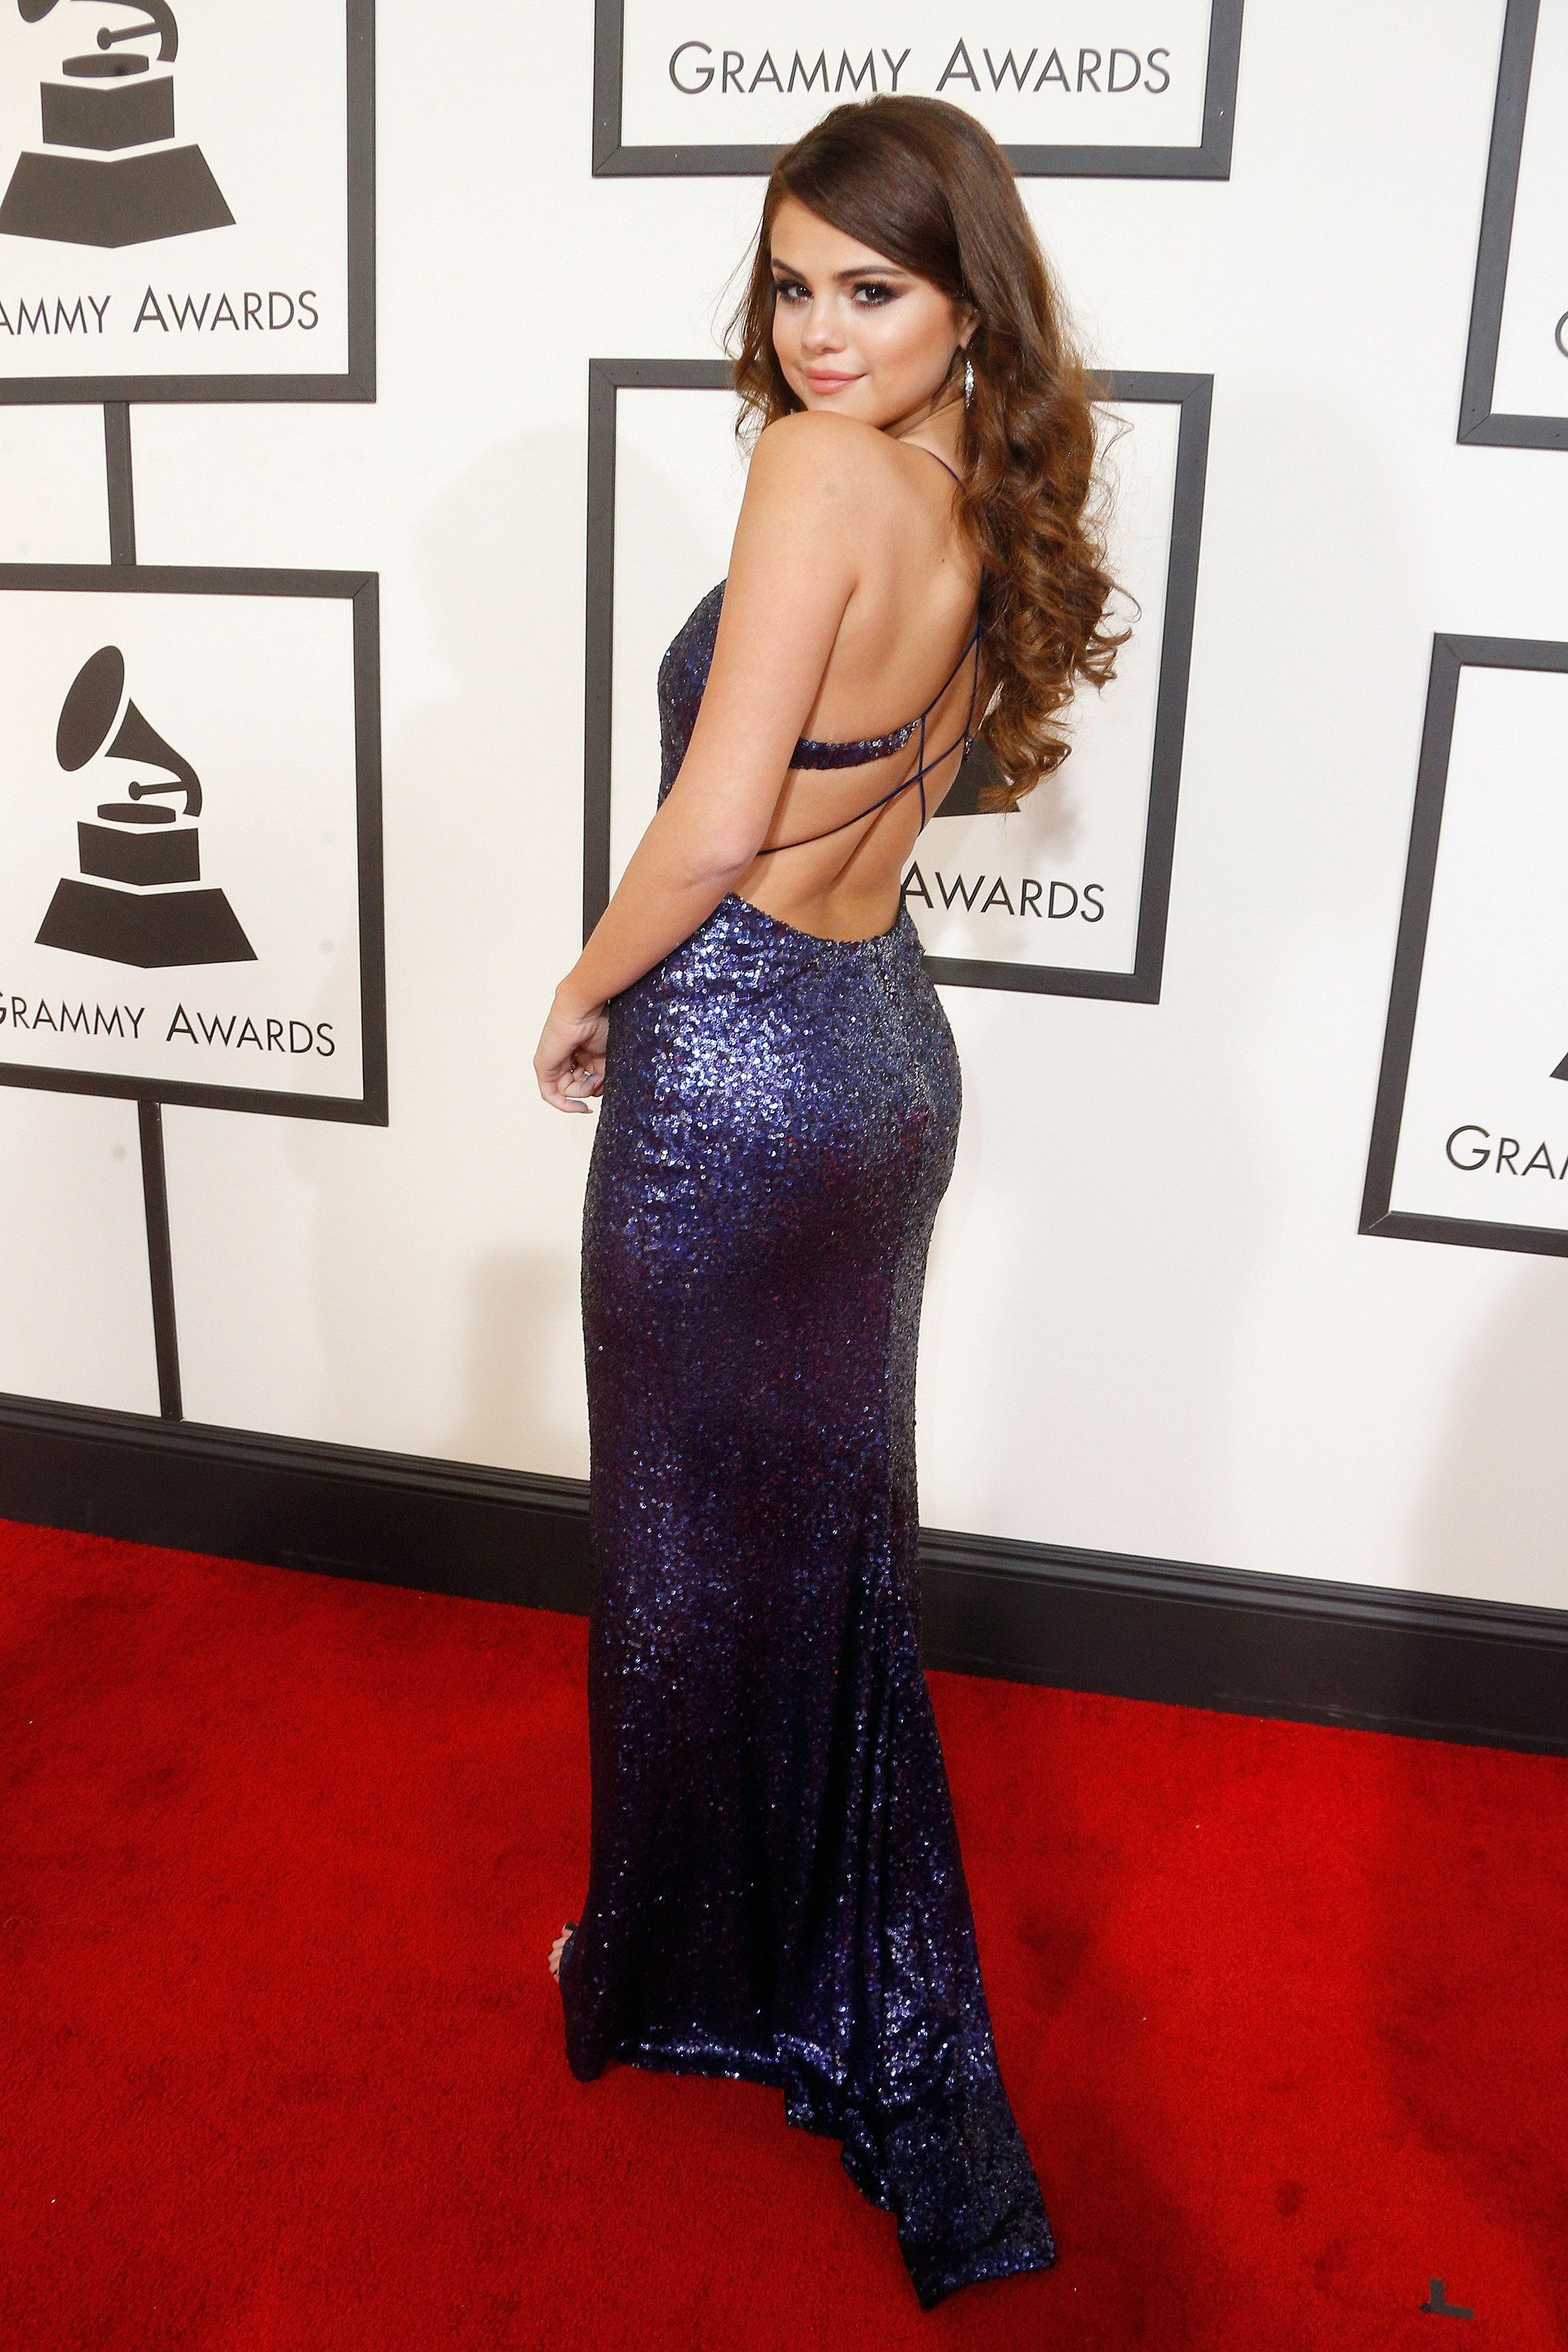 Does Selena Gomez s Sequined Mermaid Gown Take You by Surprise ... 03481a51590e